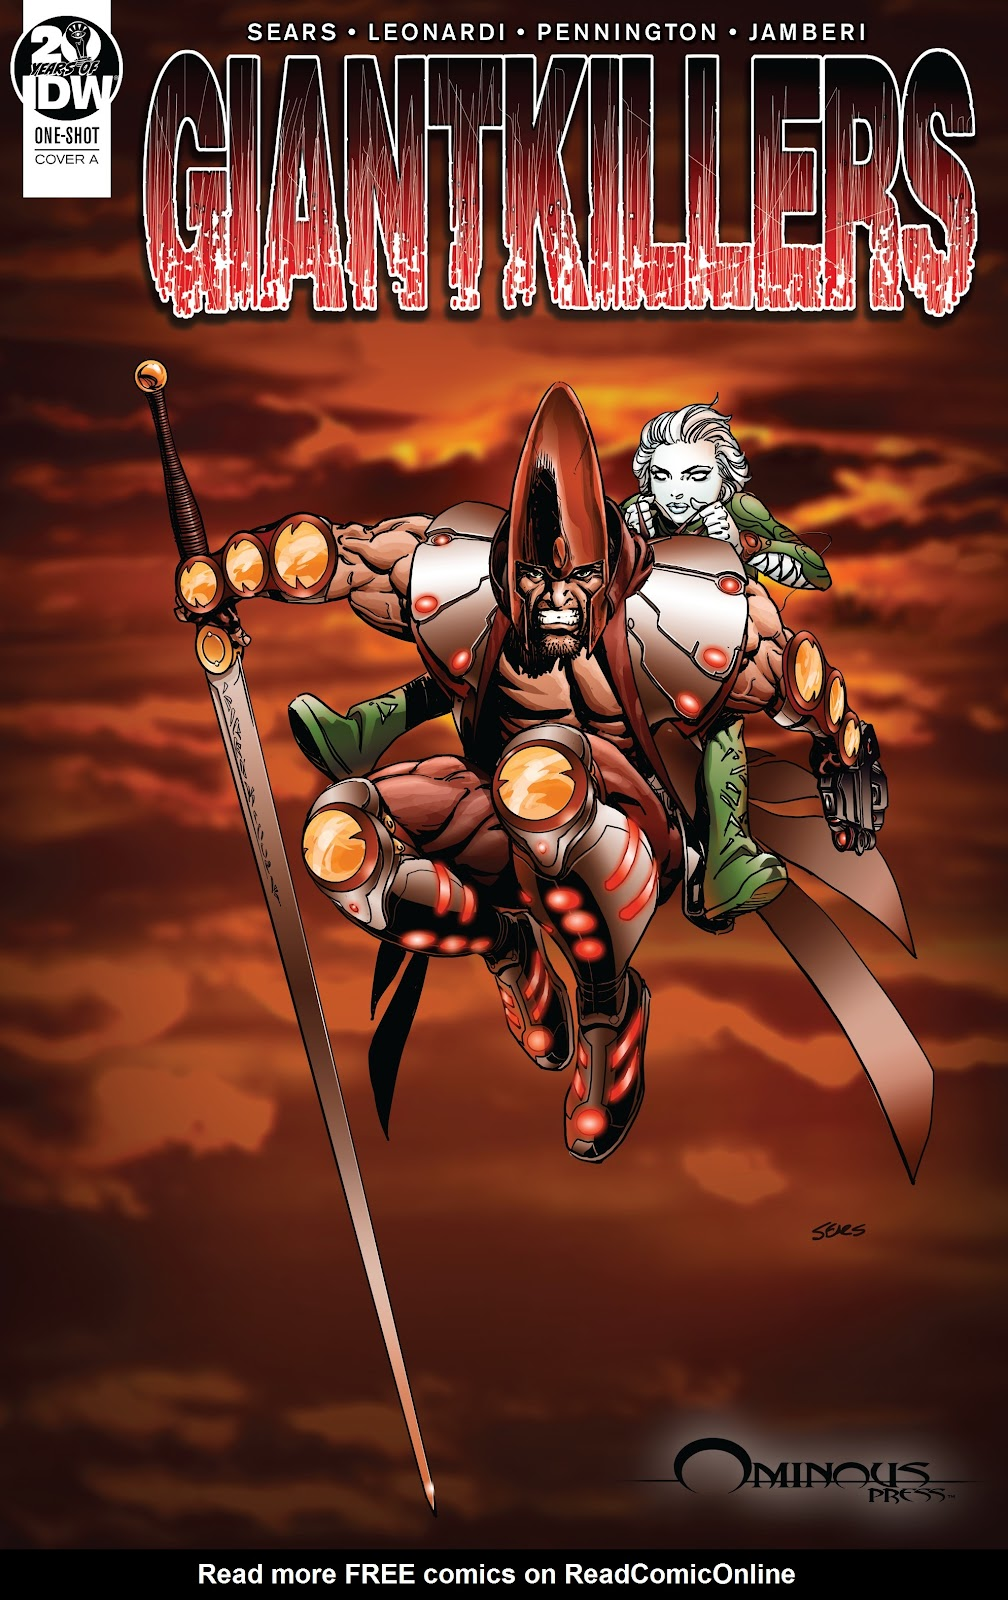 Read online Giantkillers One-Shot comic -  Issue # Full - 1